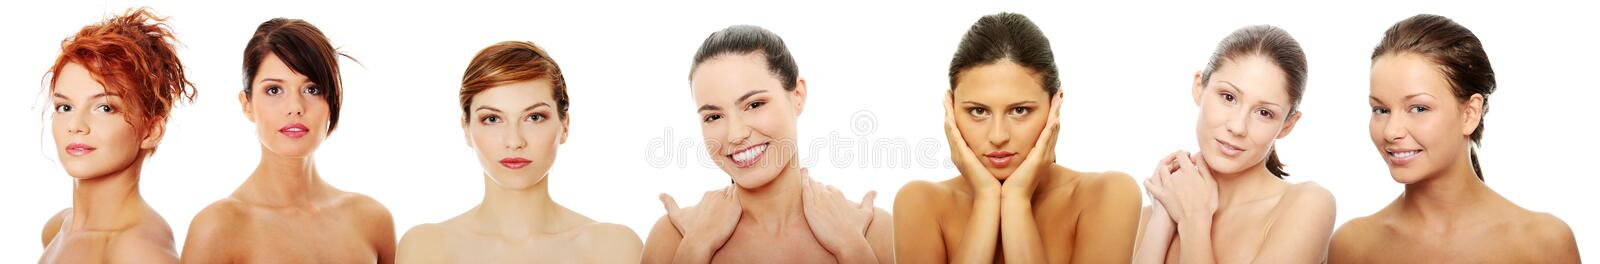 Happy group of of caucasian young woman royalty free stock photography